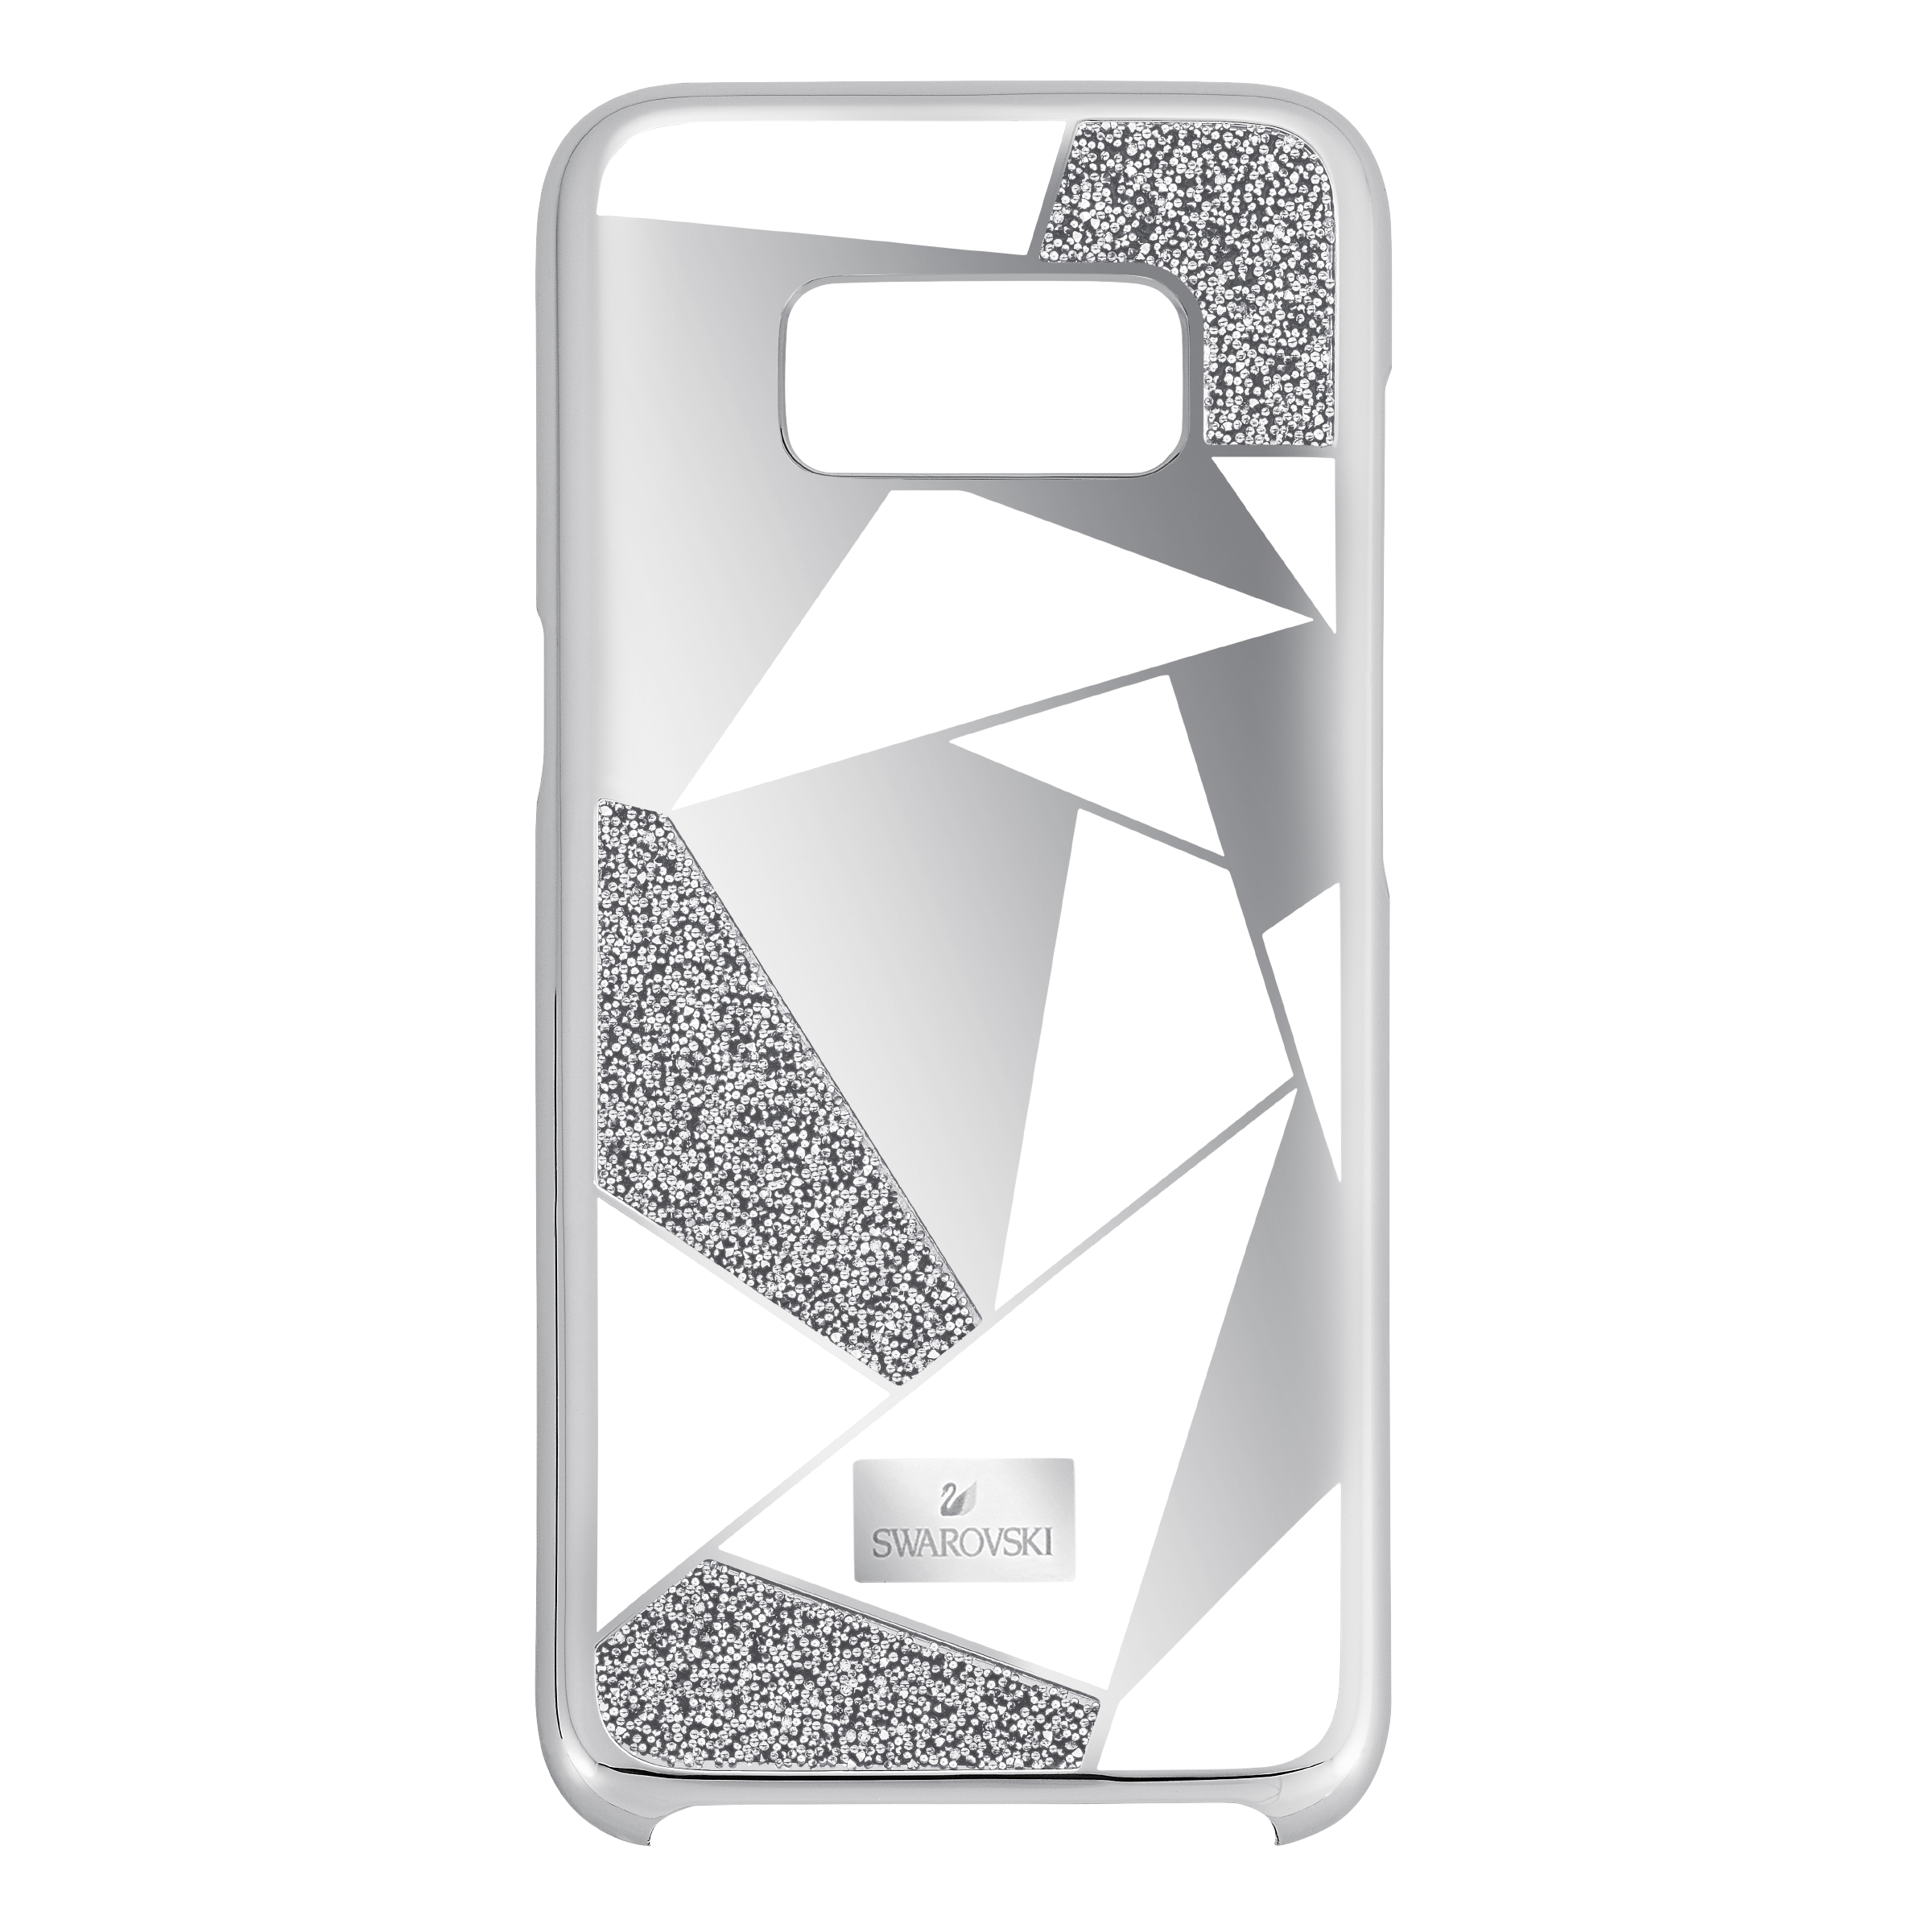 Heroism Smartphone Case with Bumper, Samsung Galaxy S® 8, Gray